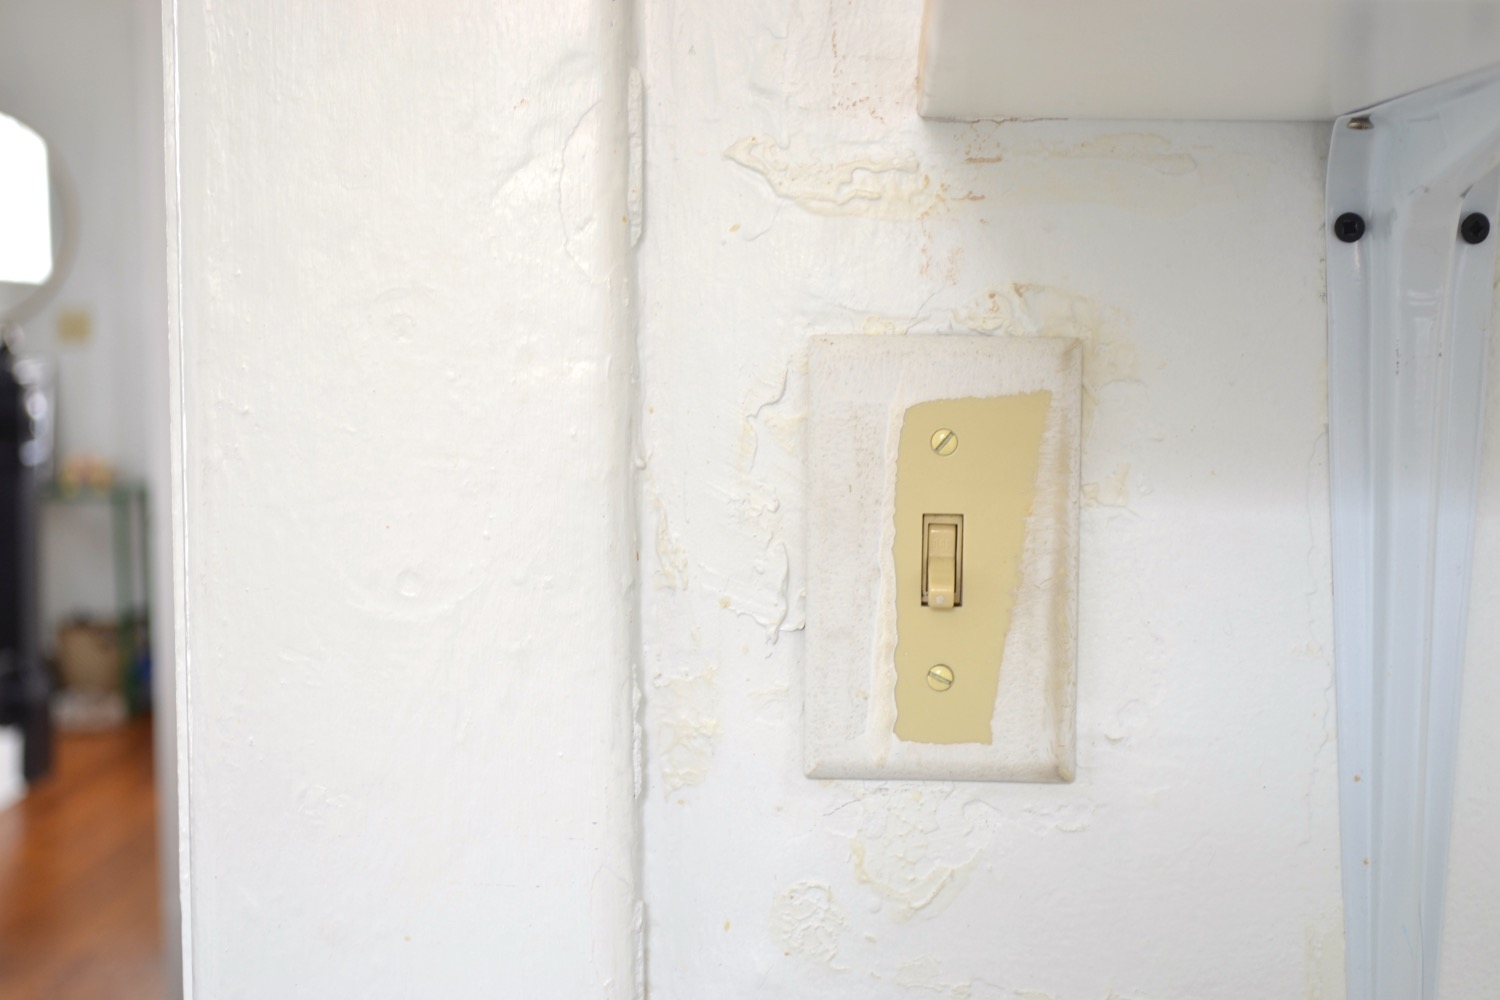 Outlet-change-receptacles02.jpg